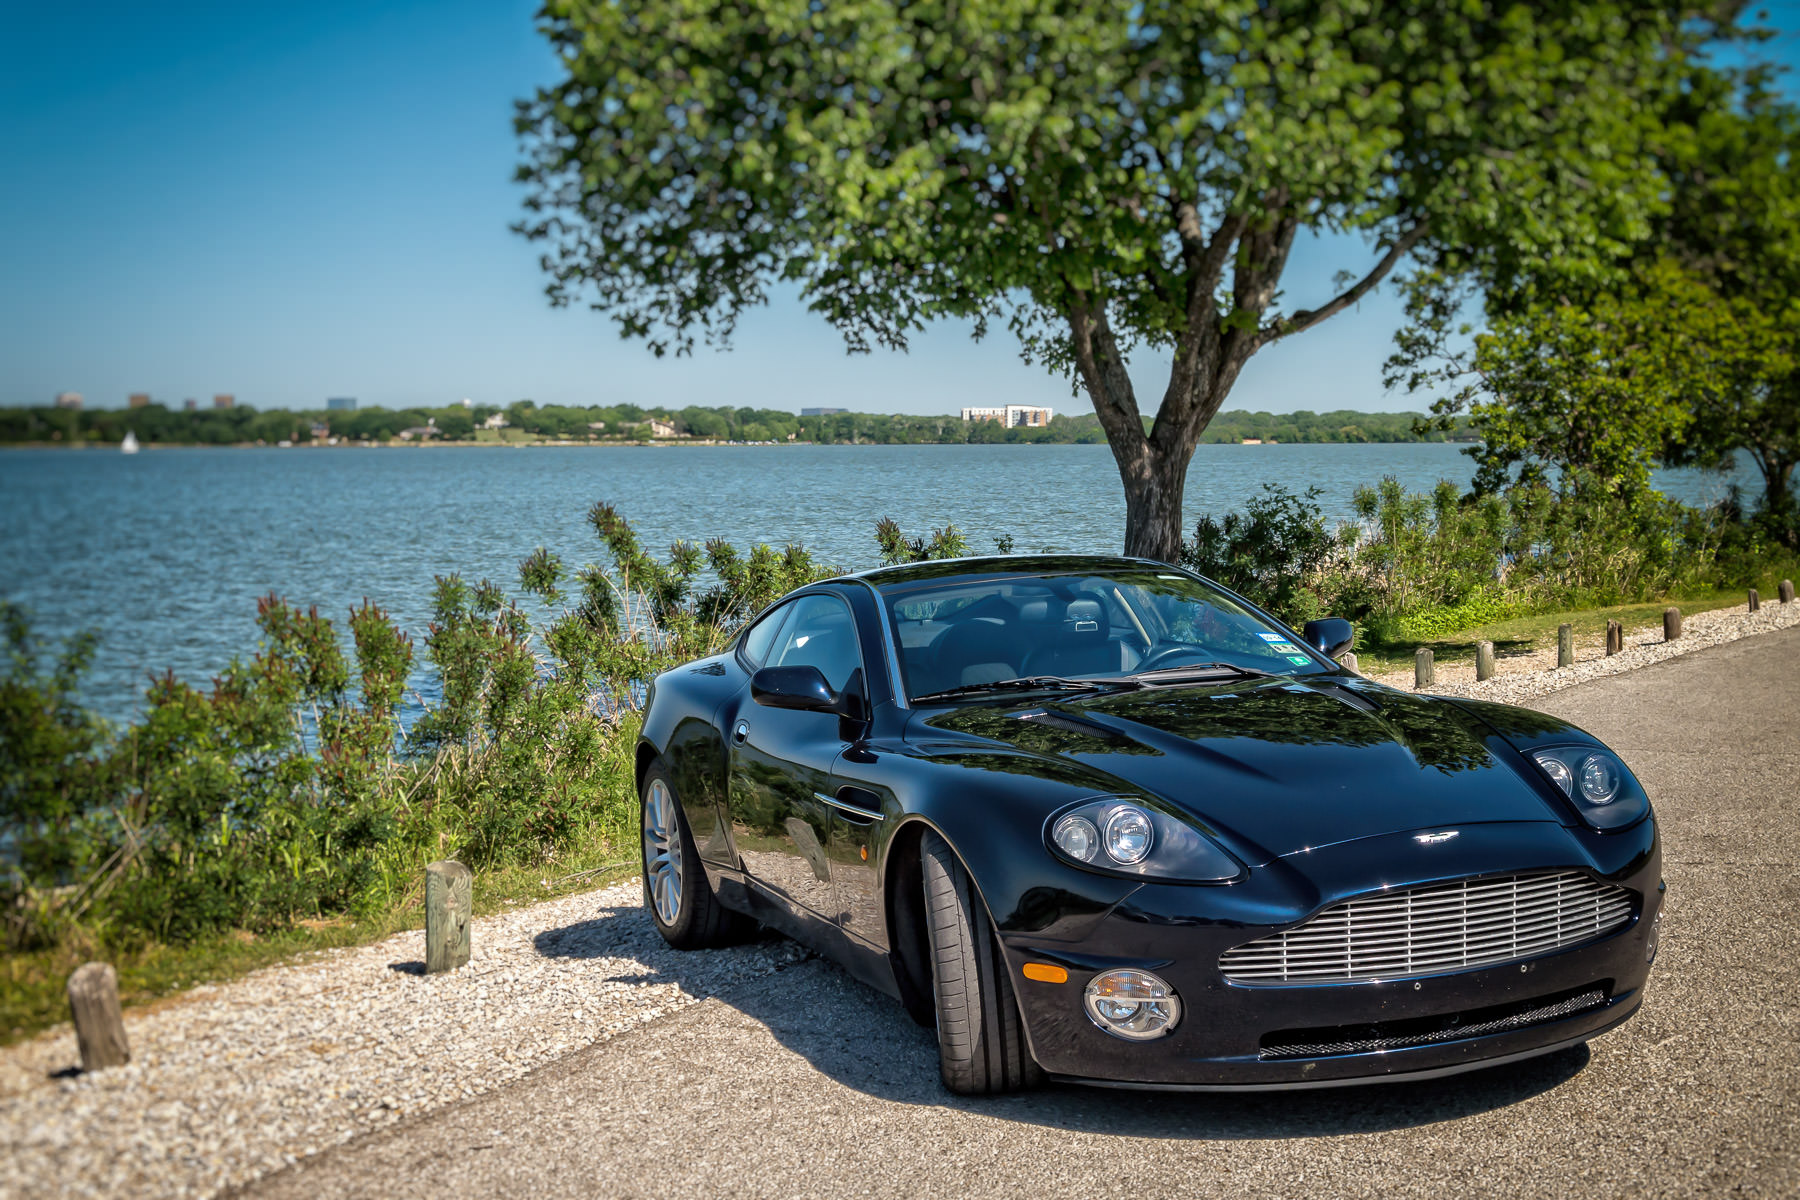 An Aston Martin parked on the shoreline of White Rock Lake, Dallas.